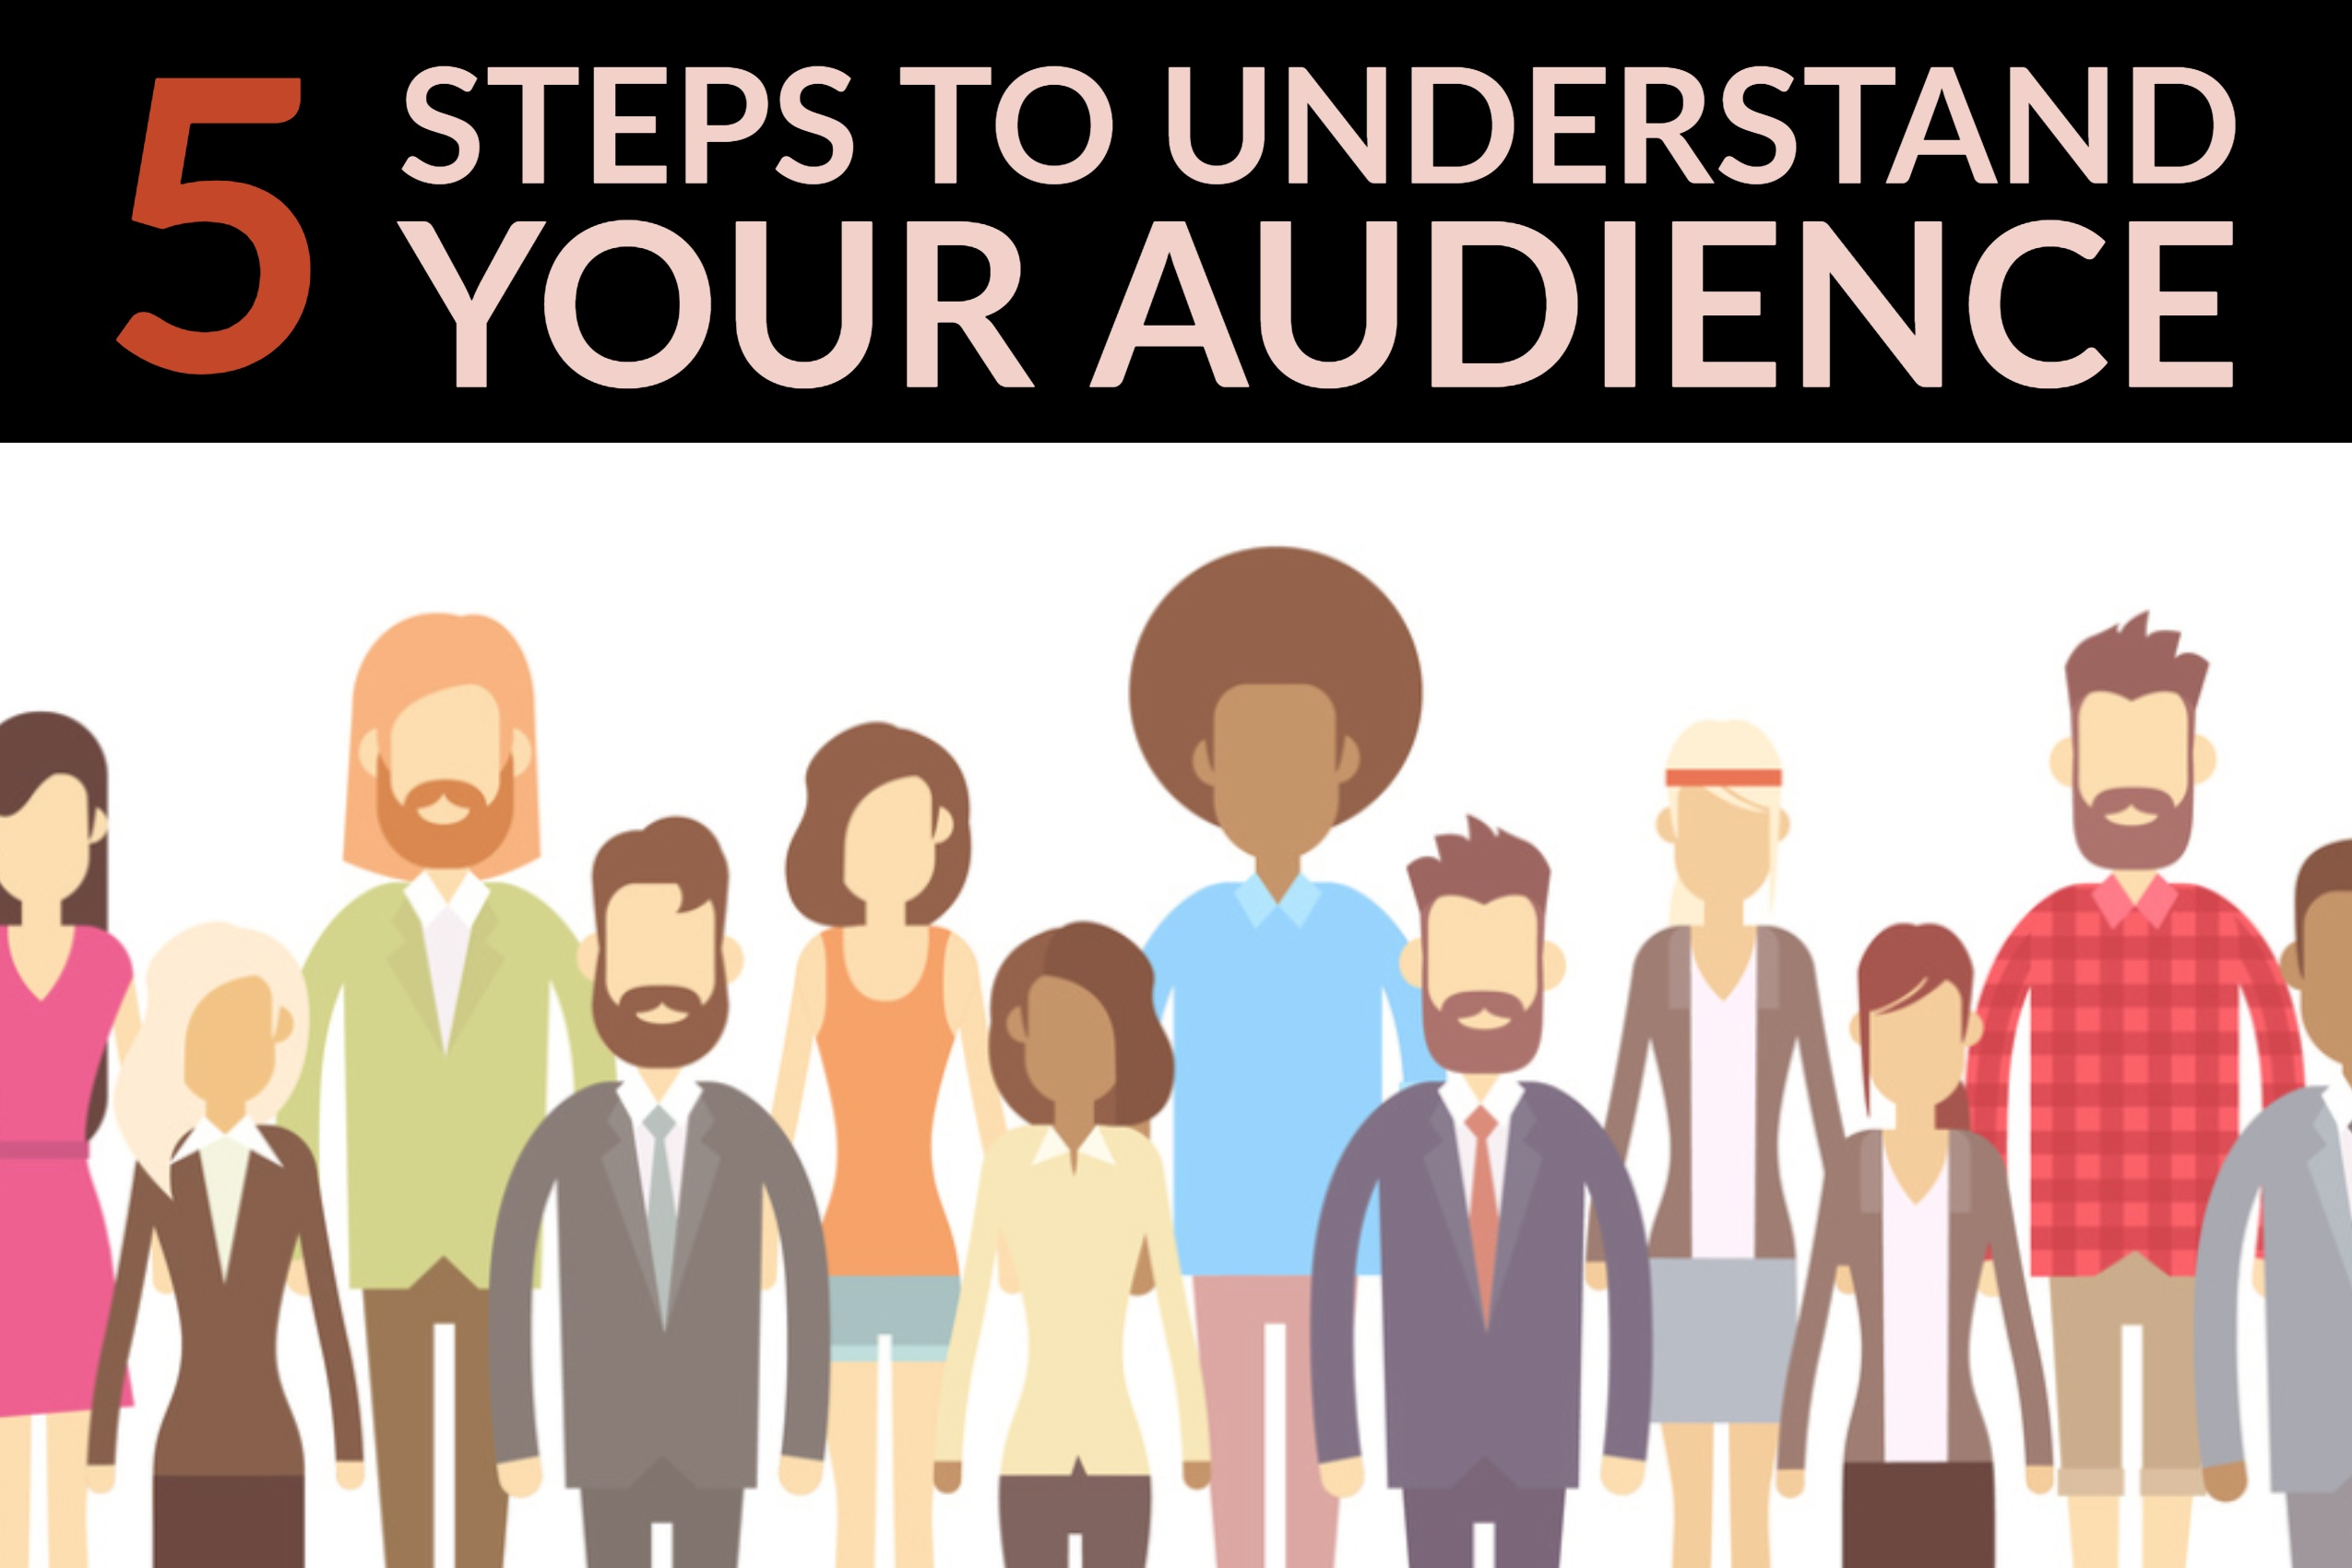 5 Steps To Understand Your Audience